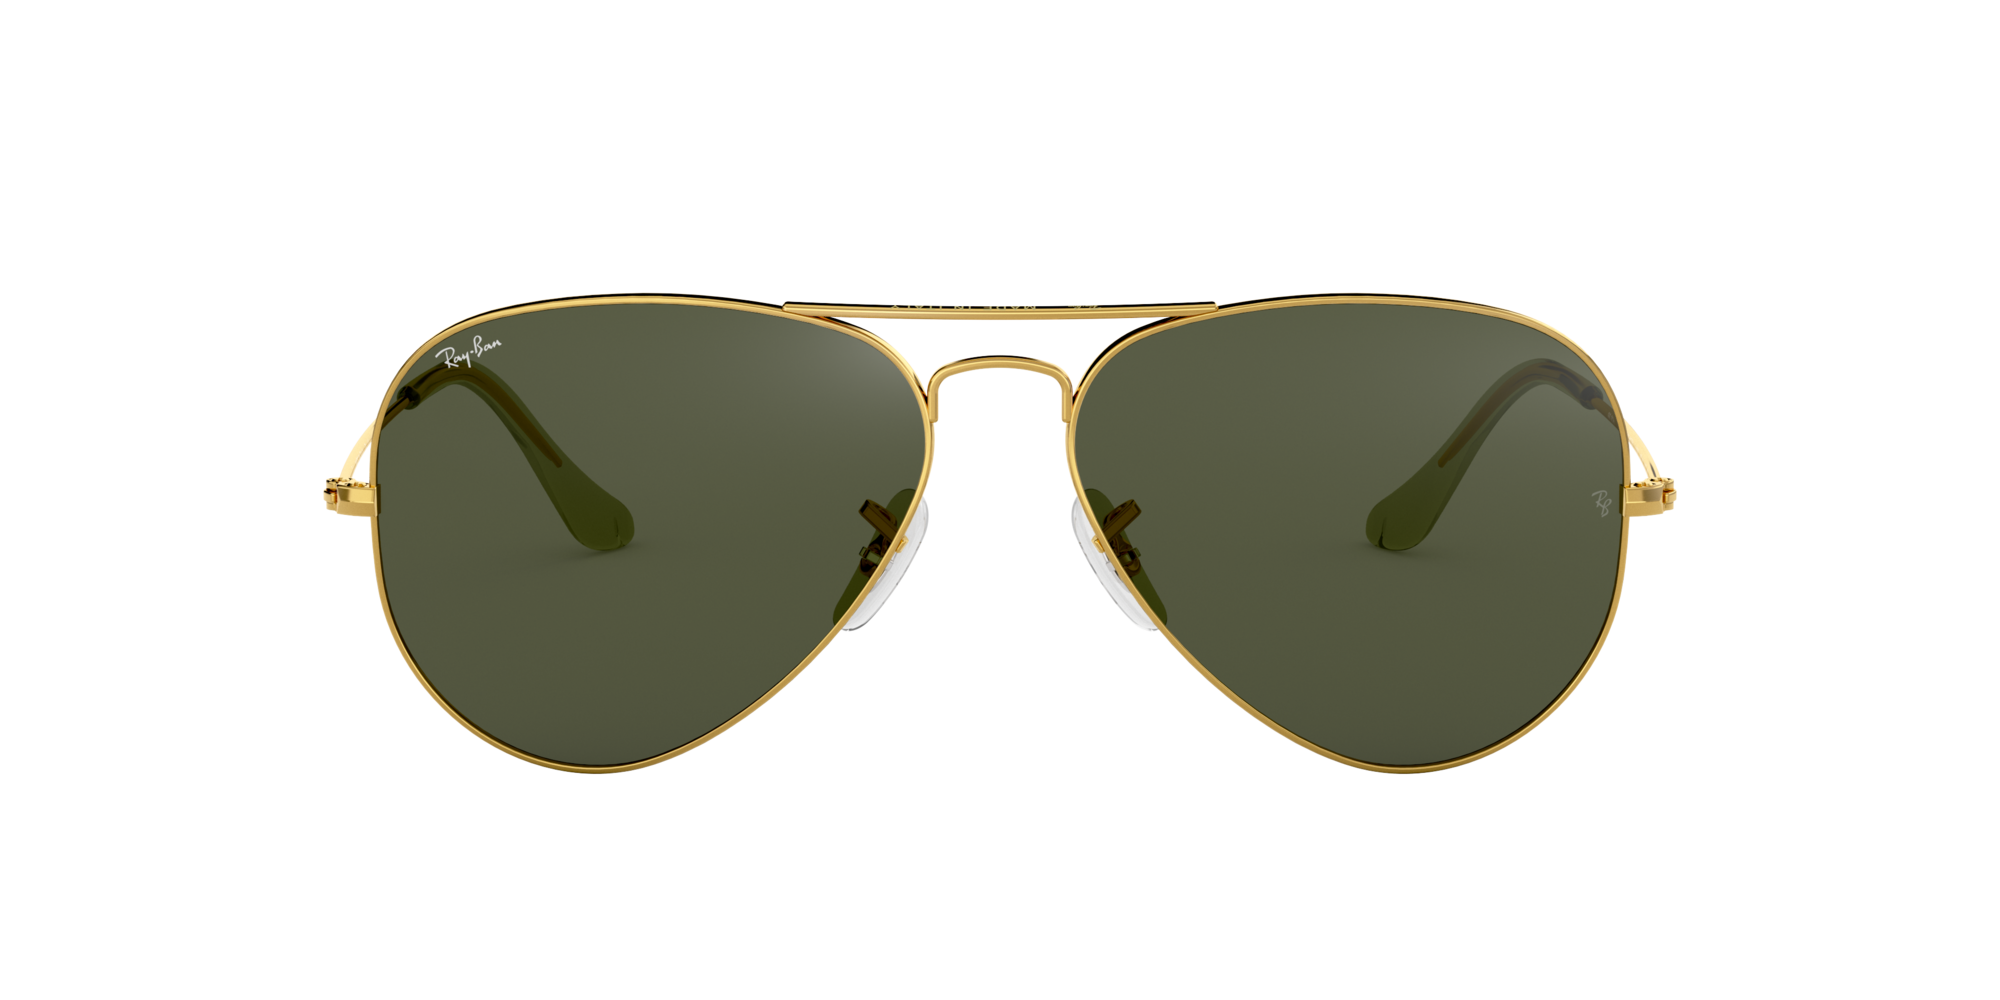 Image for RB3025 58 ORIGINAL AVIATOR from LensCrafters | Glasses, Prescription Glasses Online, Eyewear